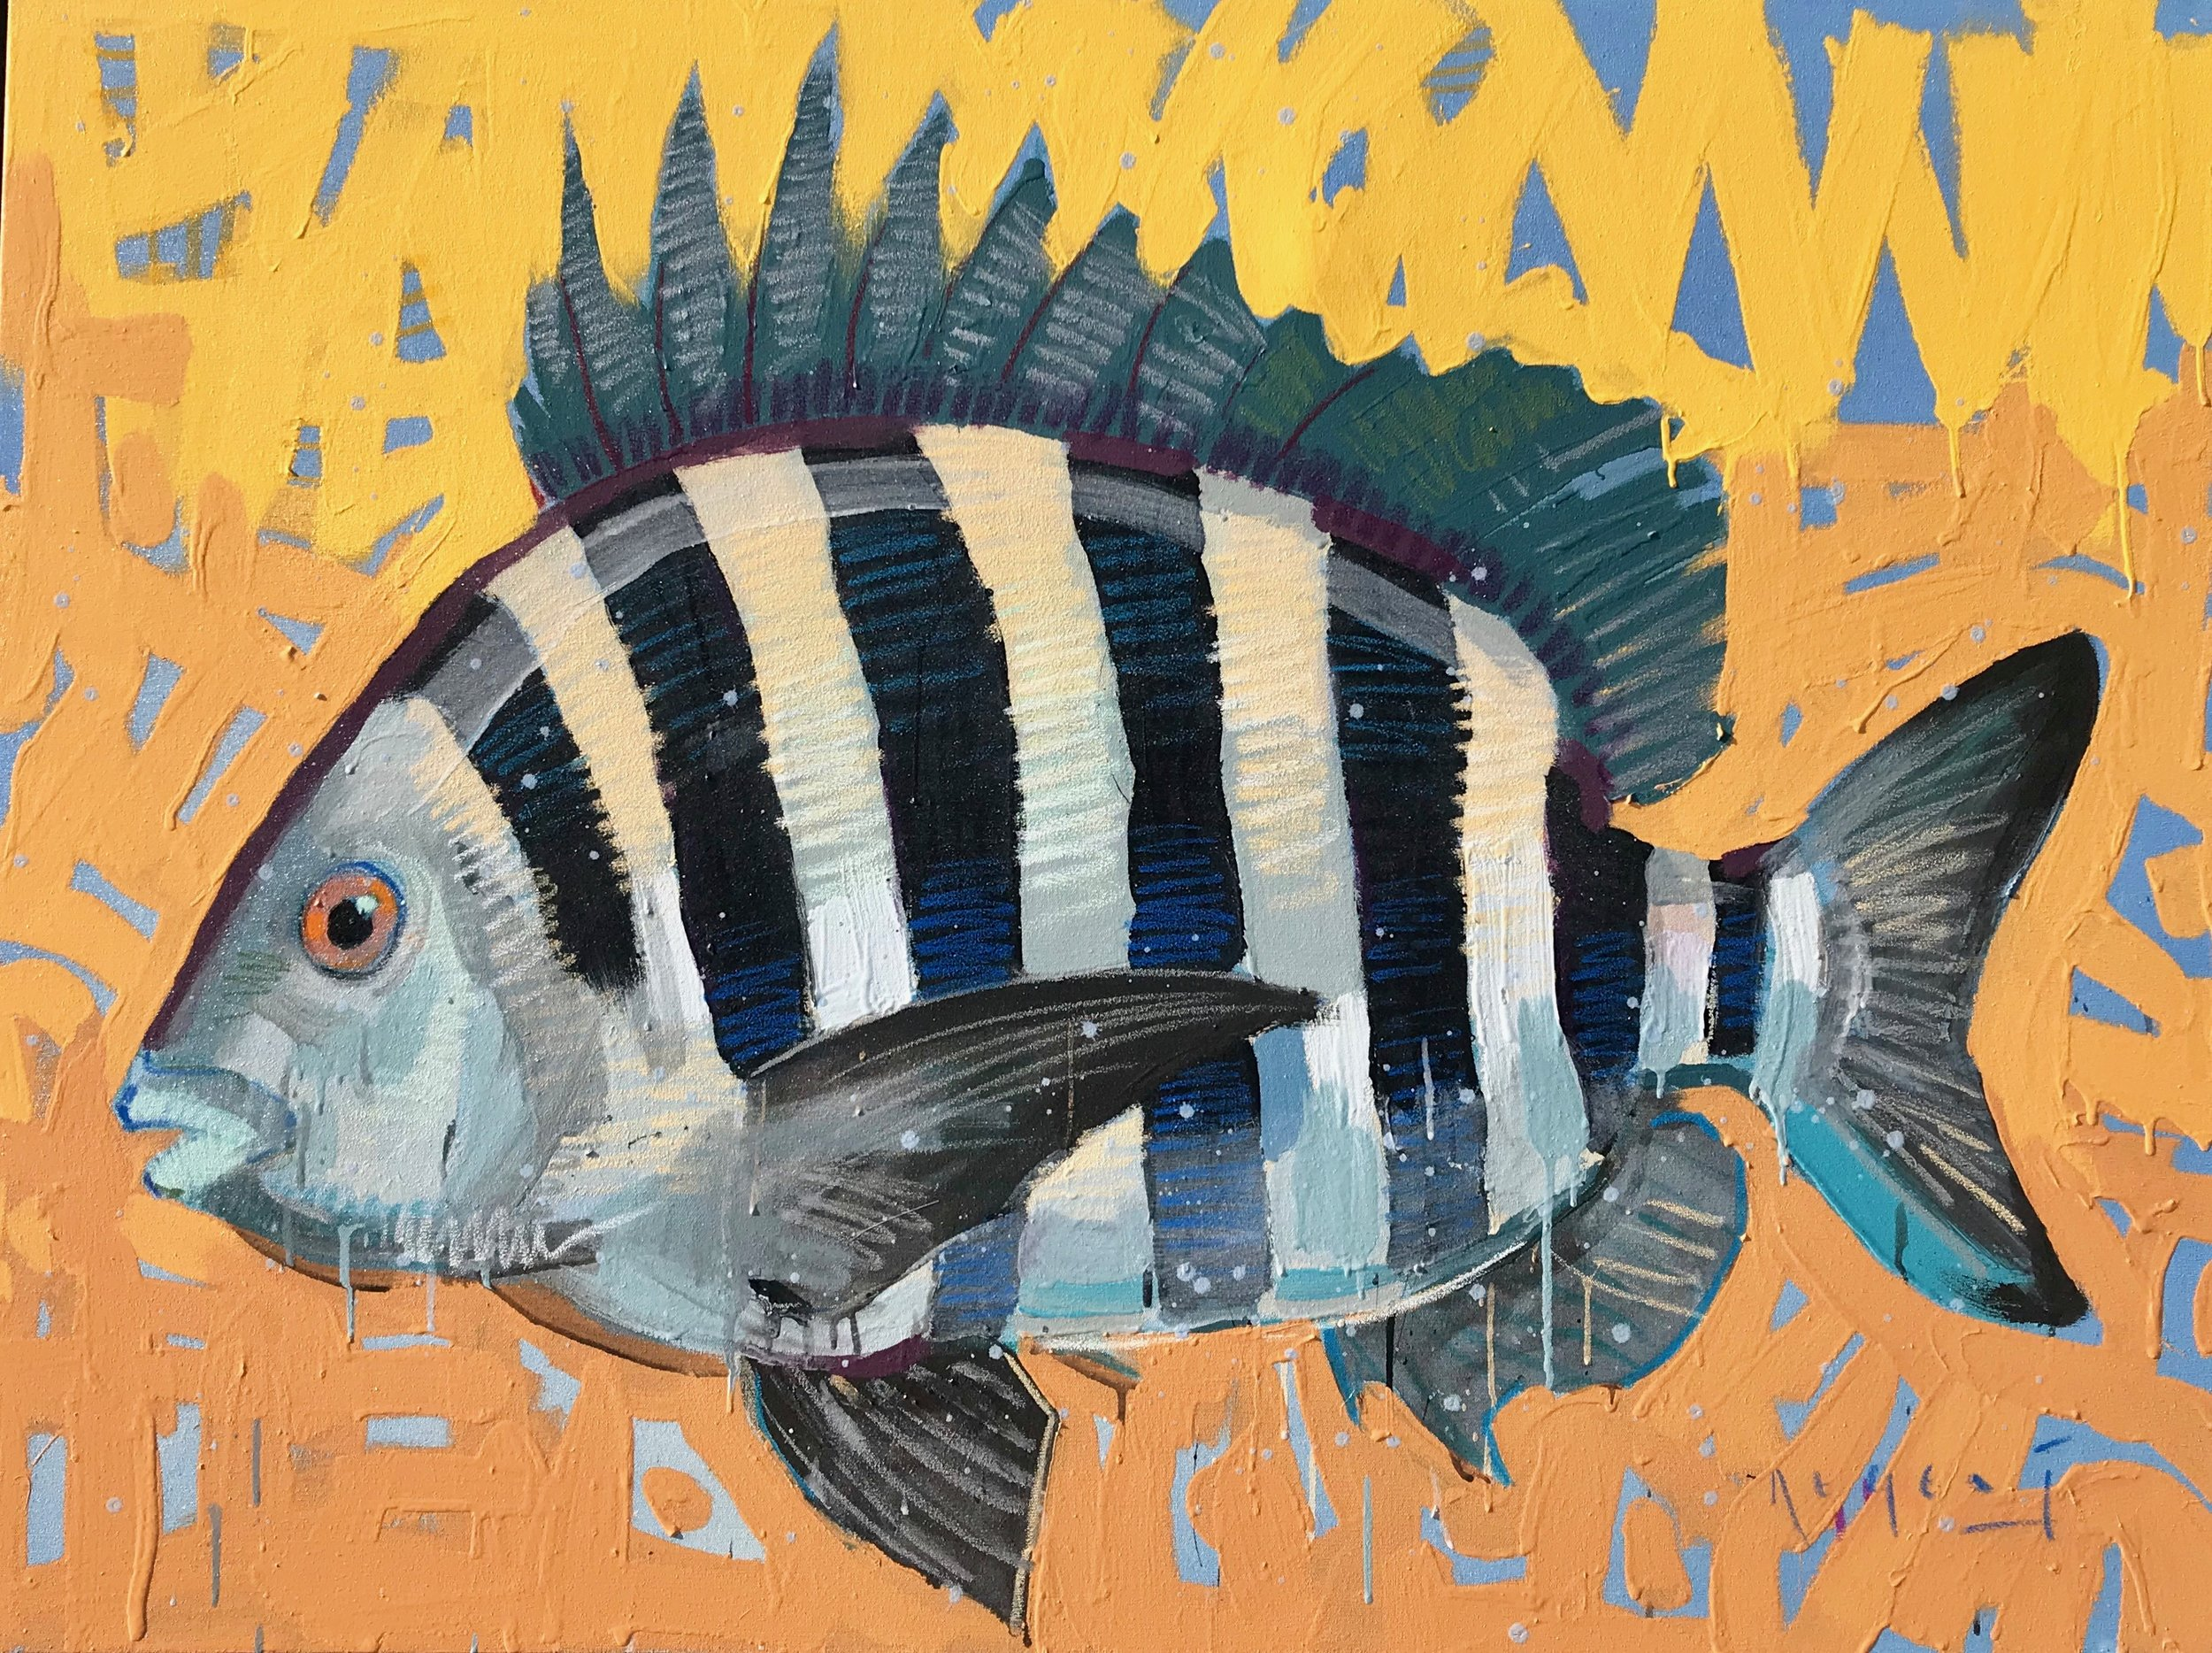 TIM JAEGER, SHEEPSHEAD no. 3, 2019